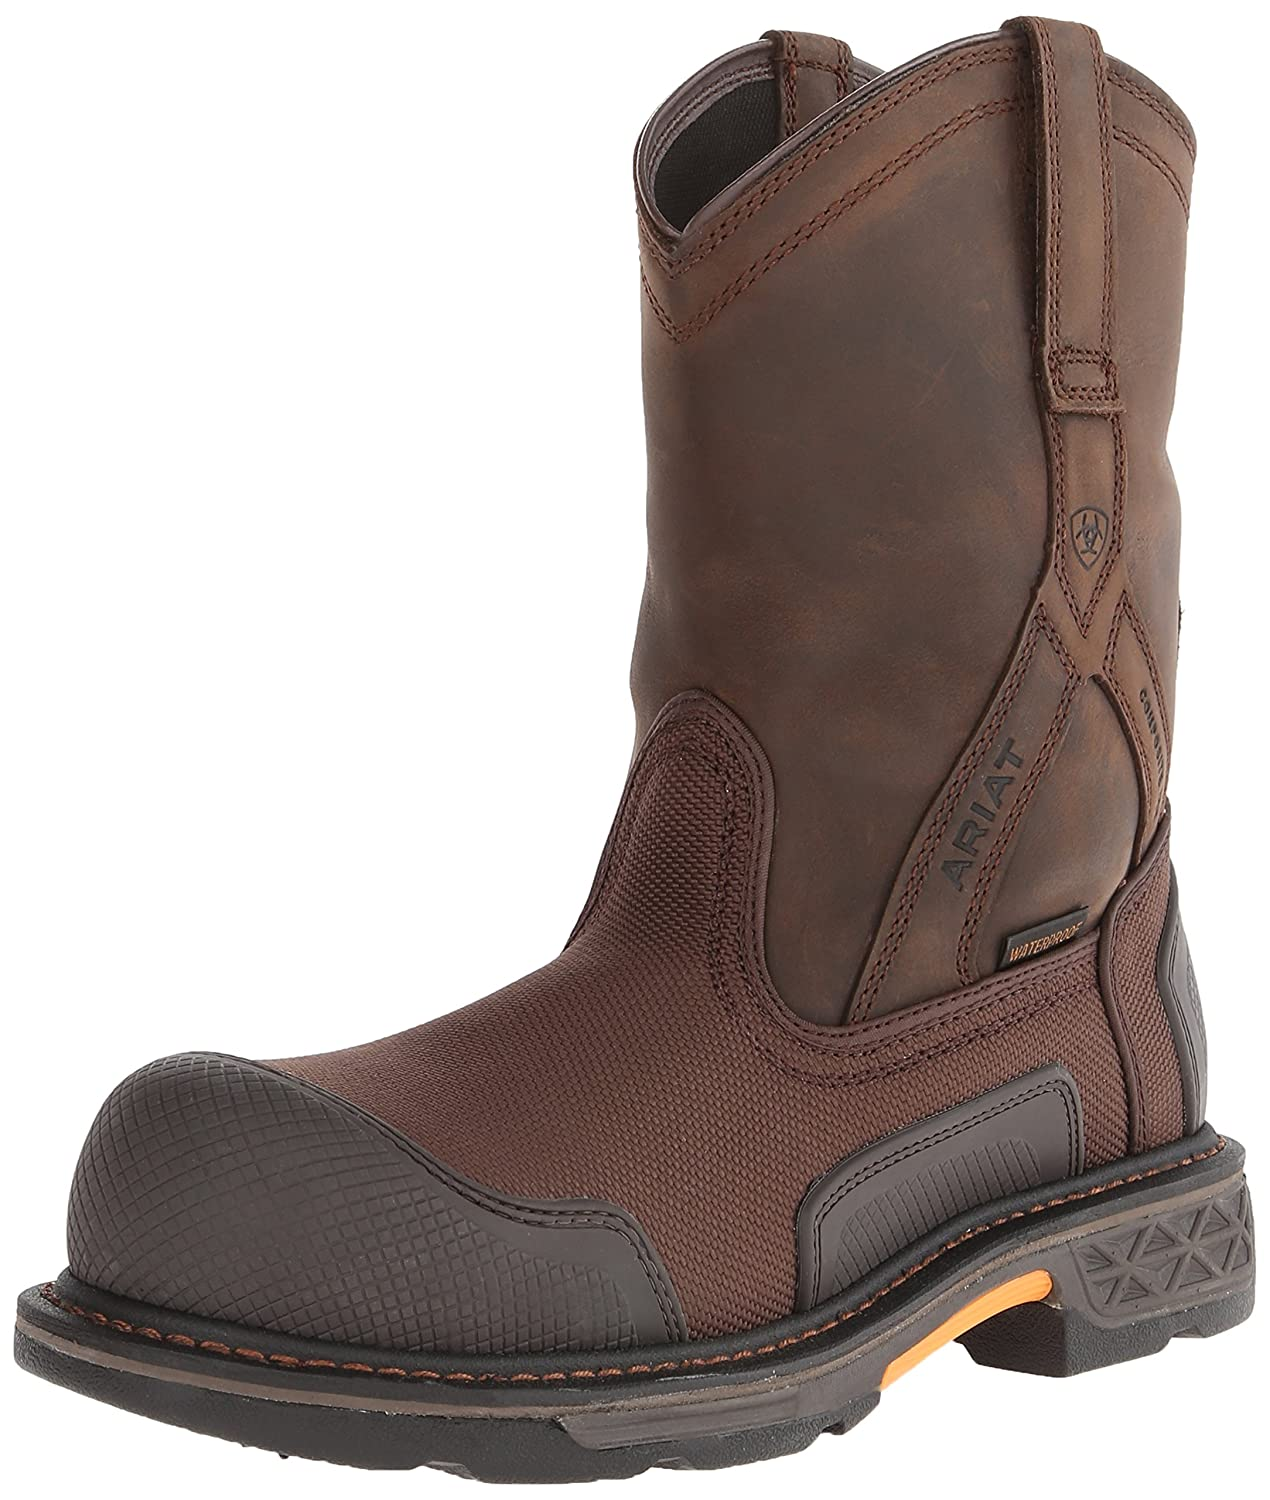 b759aeb640d Ariat Men's Overdrive XTR Pull-on H2O Composite Toe Work Boot